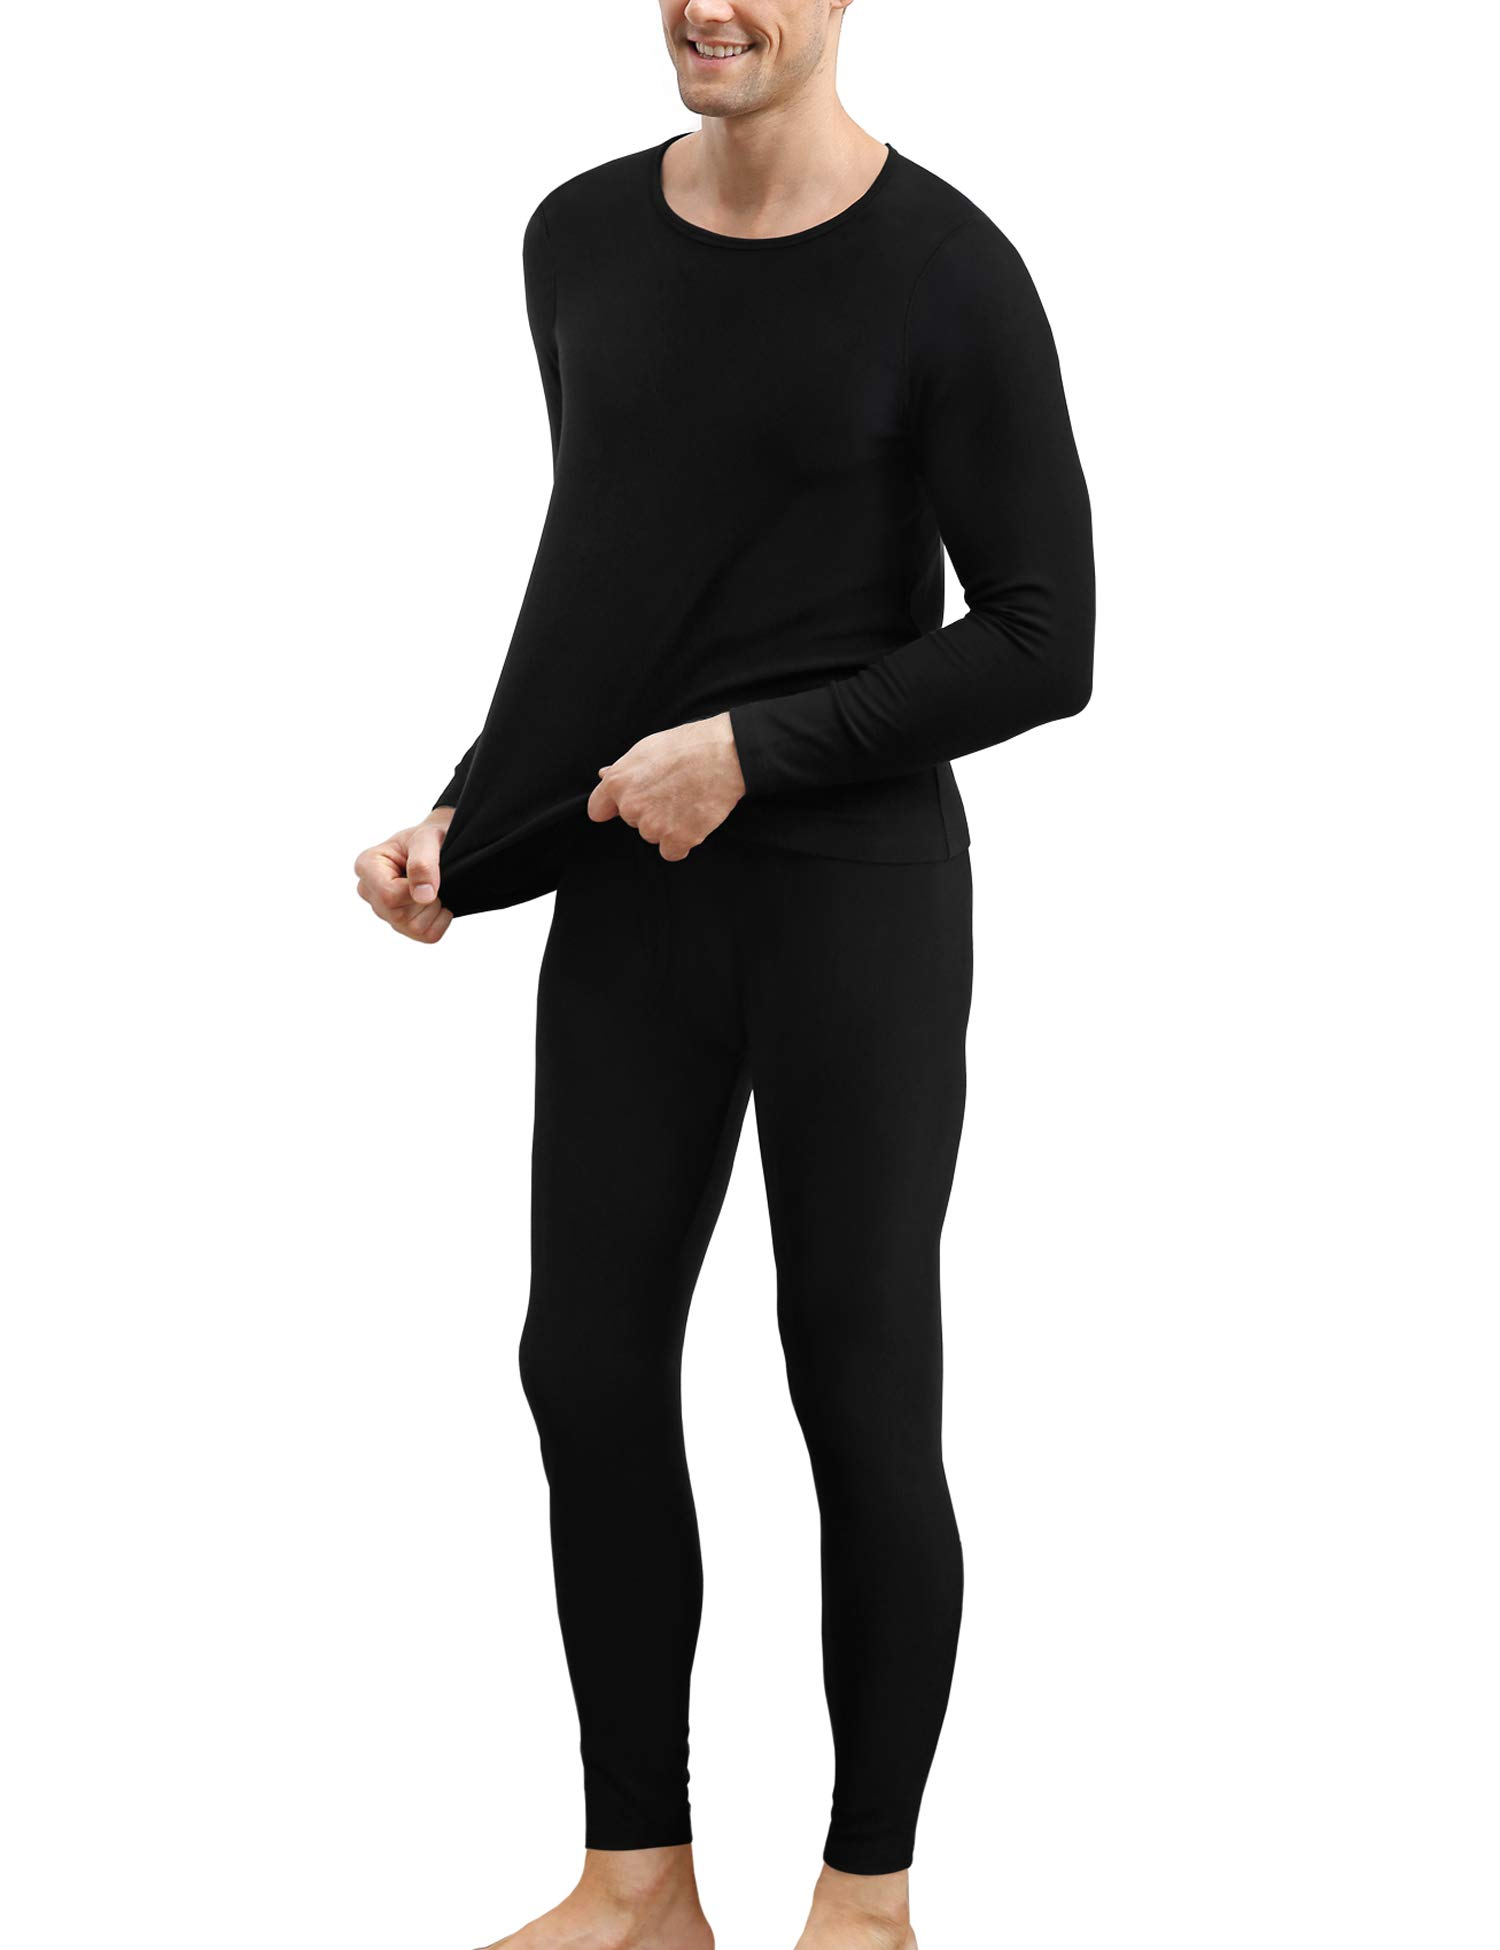 COLORFULLEAF Mens Cotton Thermal Underwear Set Heavyweight Long Johns Fleece Lined (Black, M) by COLORFULLEAF